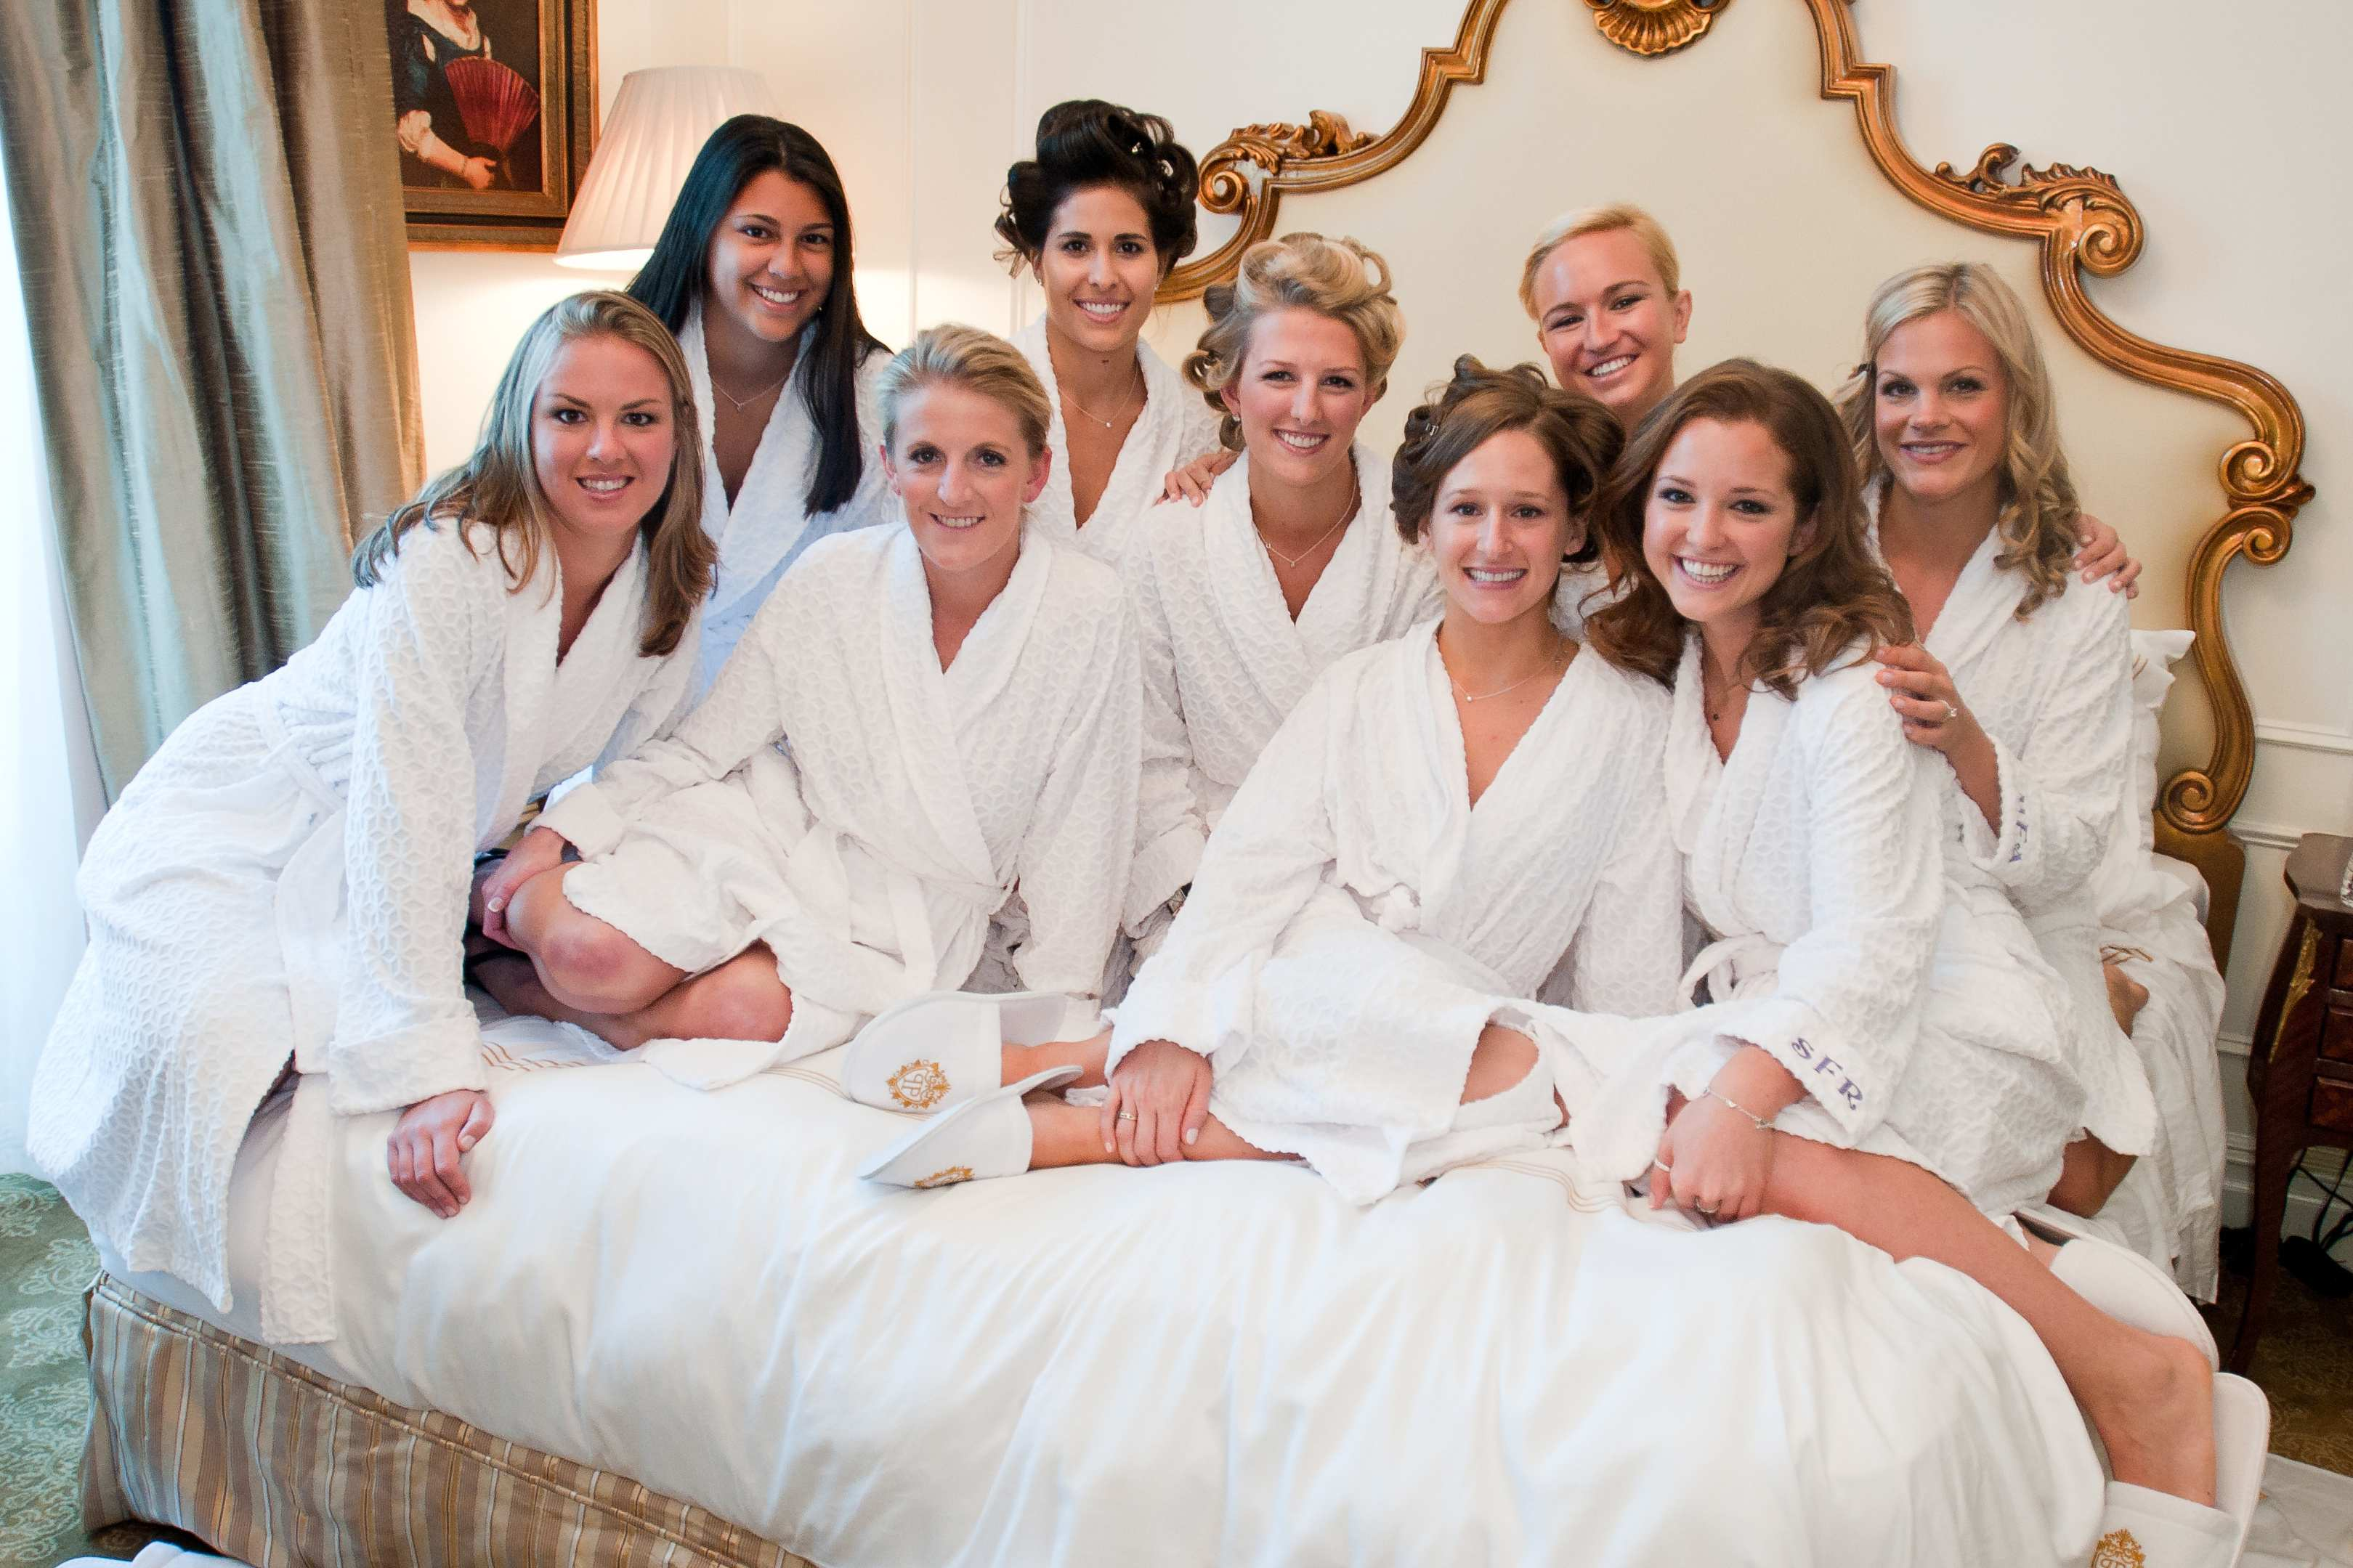 Bride and bridesmaids getting ready photos on bed with white robes